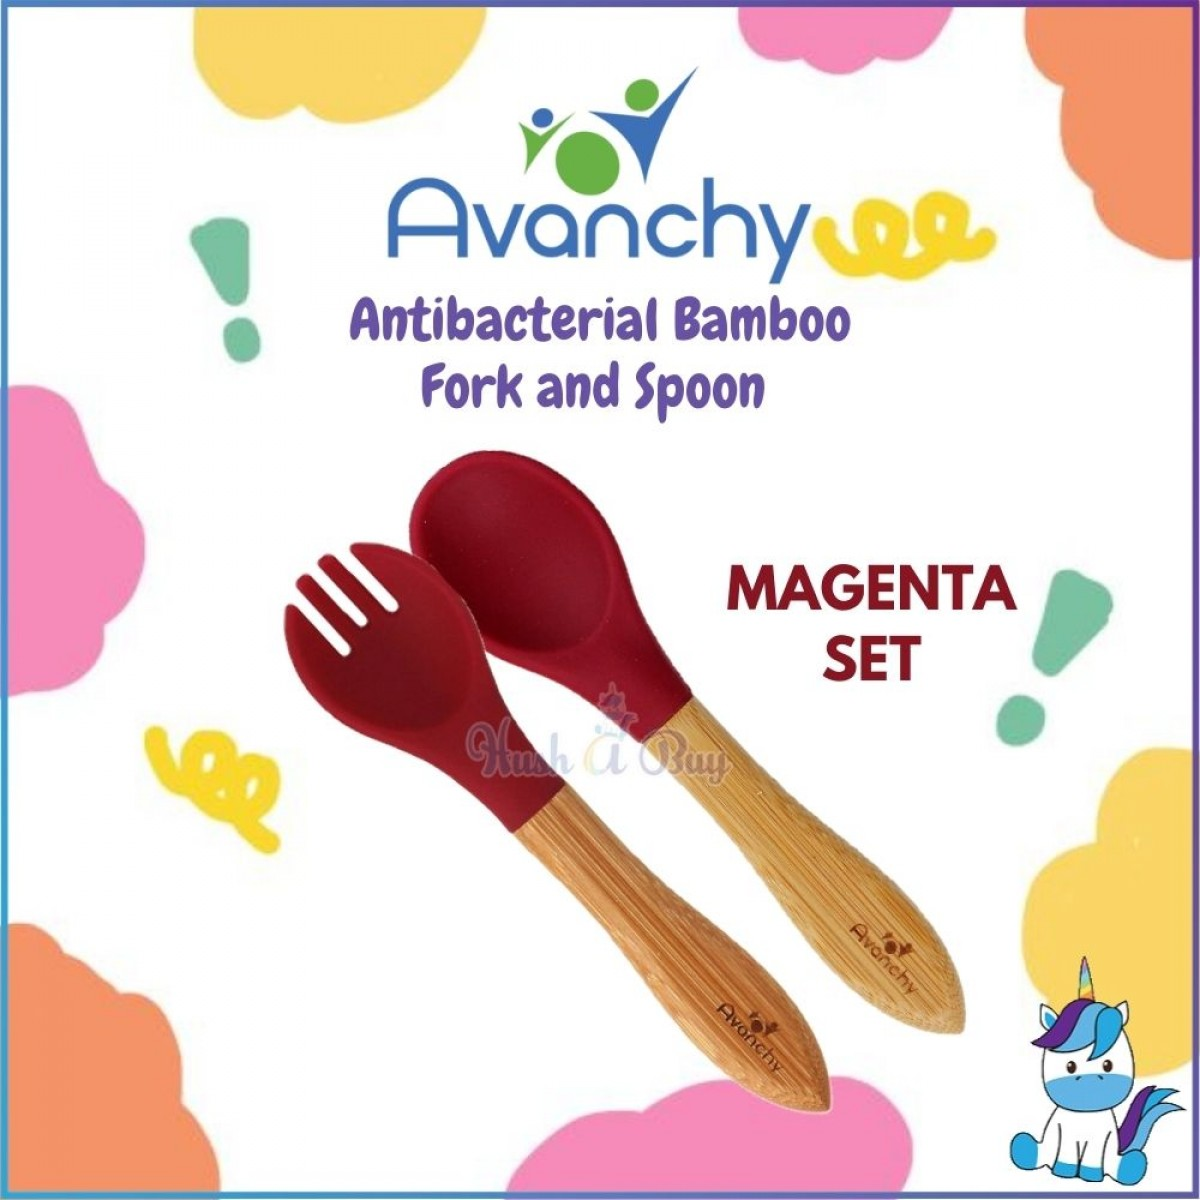 Avanchy Antibacterial Bamboo Fork and Spoon Set